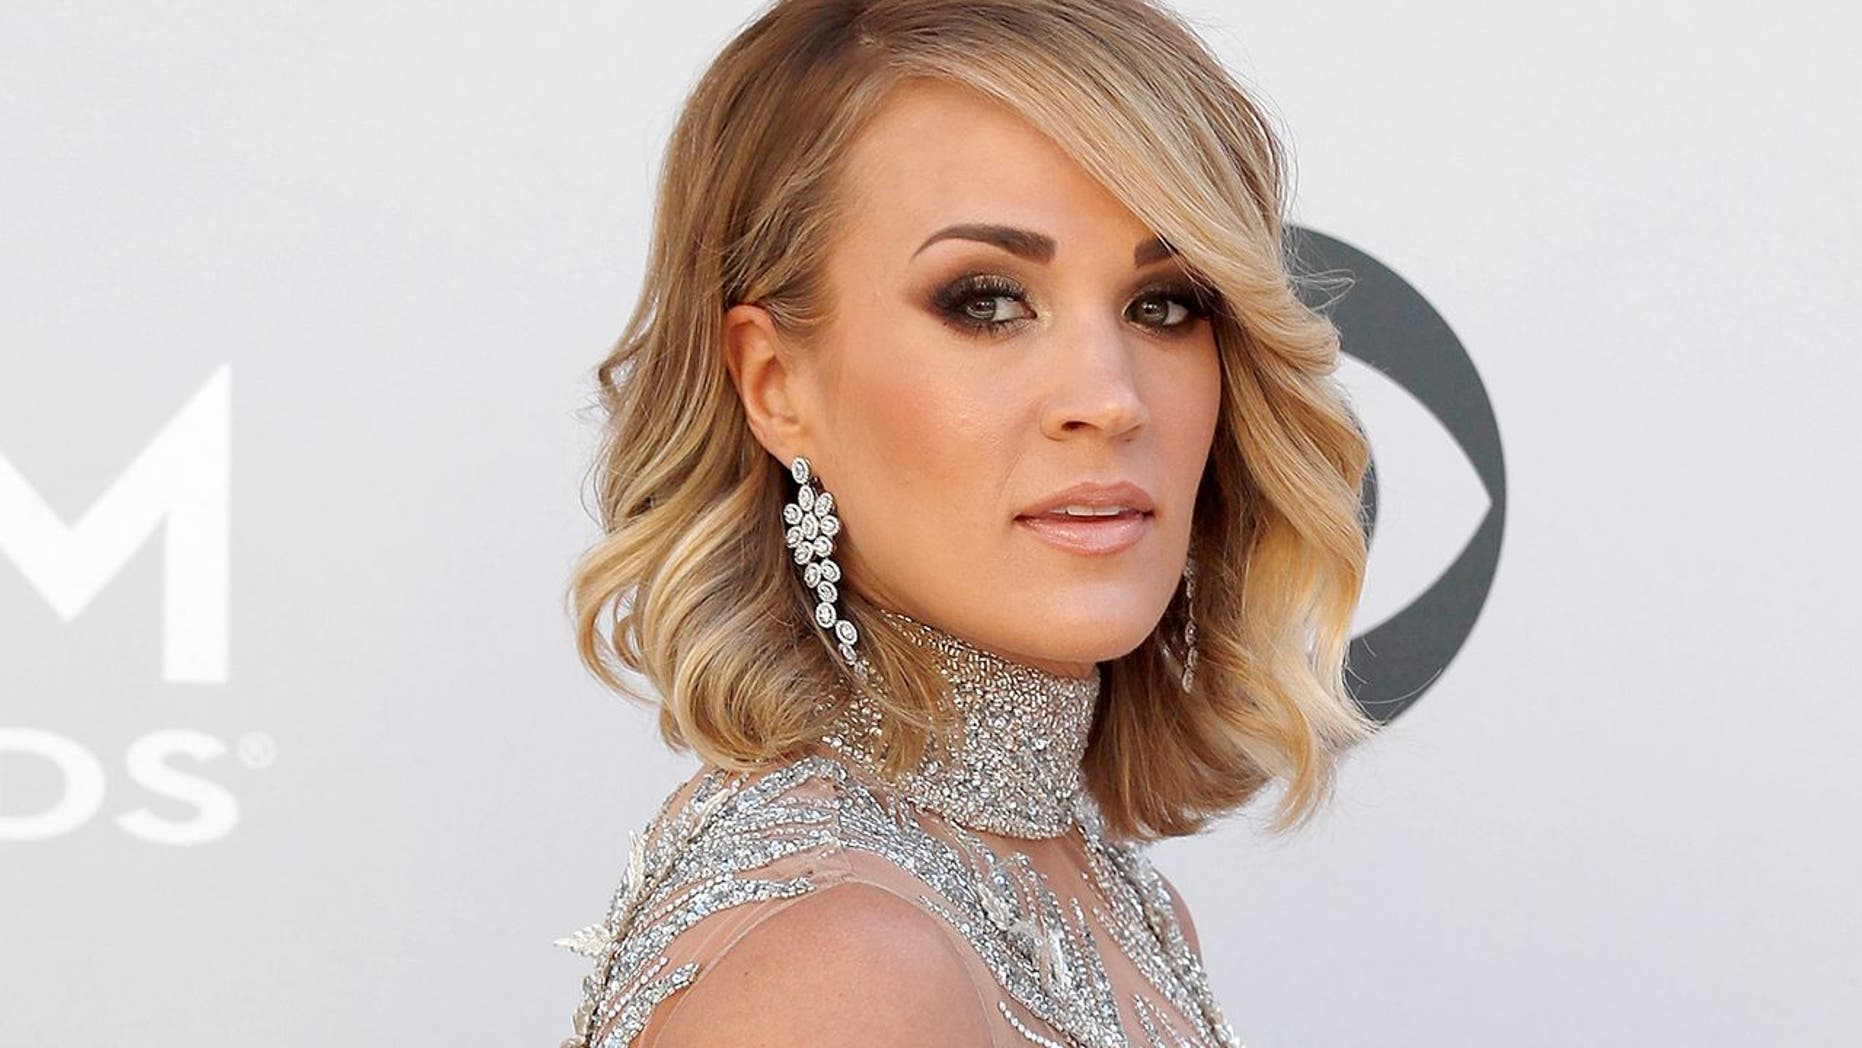 52nd Academy of Country Music Awards - Arrivals - Las Vegas, Nevada, U.S., - 02/04/2017 - Singer Carrie Underwood.